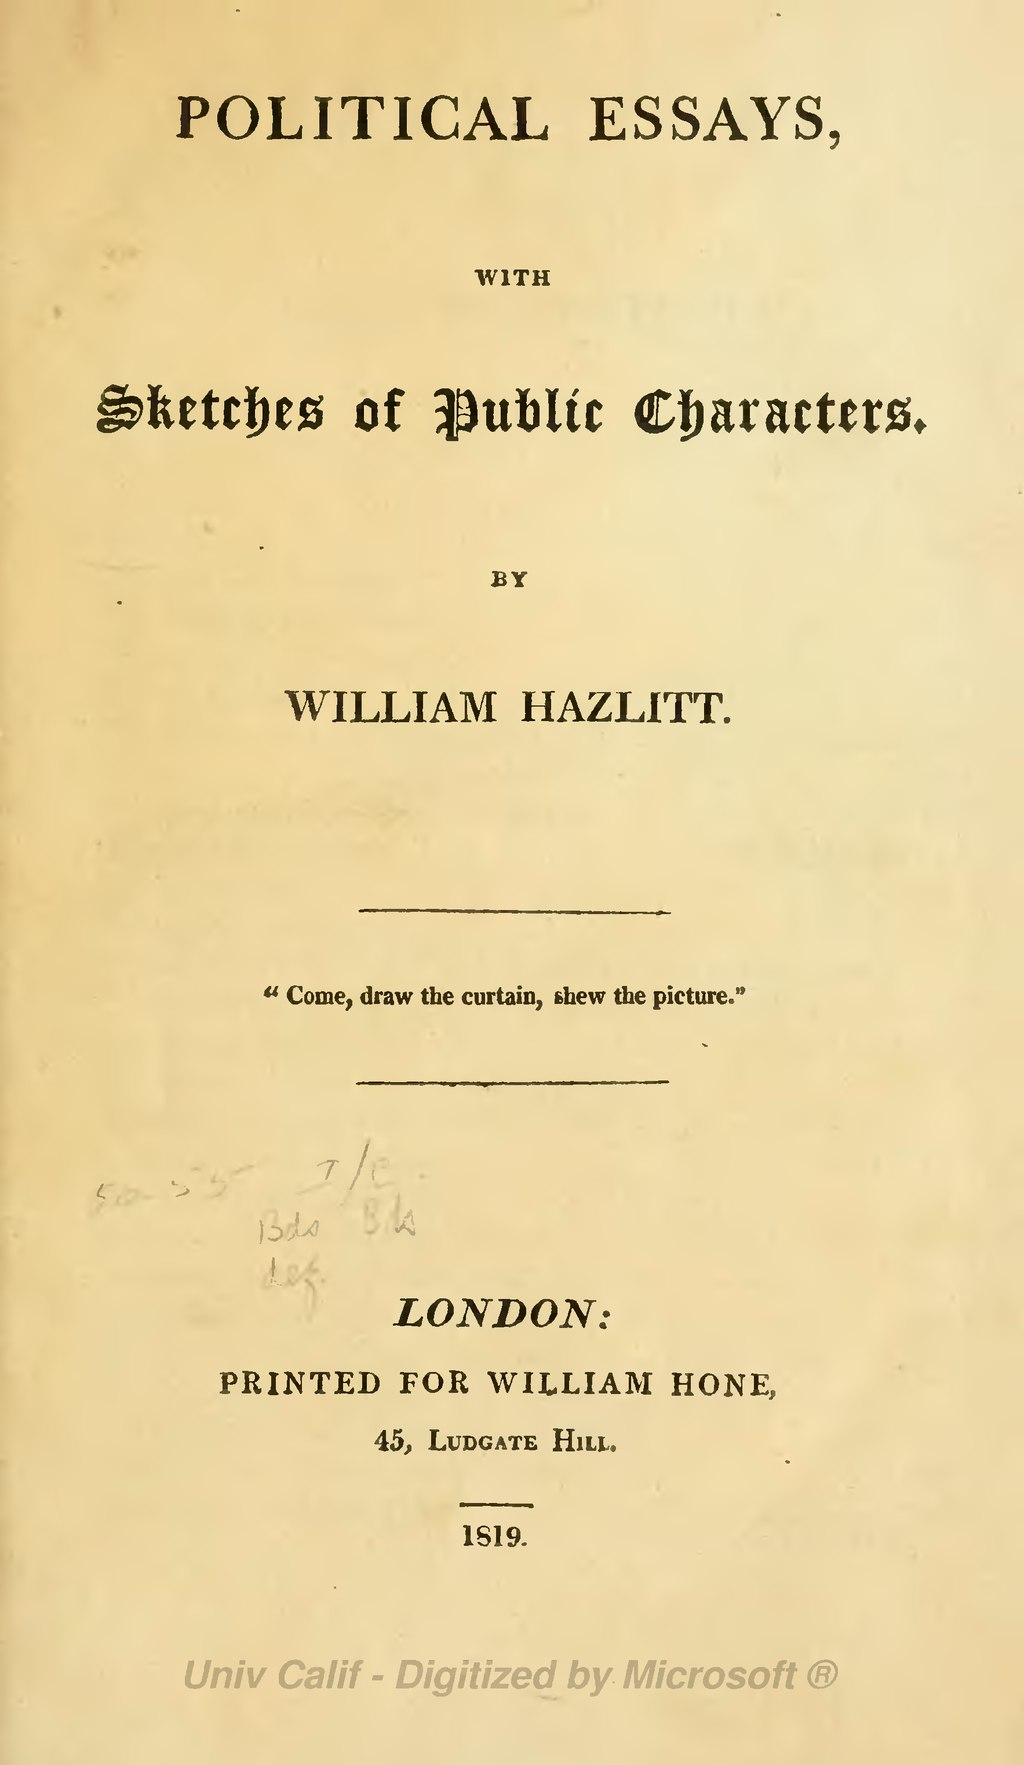 hazlitt - political essays William hazlitt (maidstone, 10 aprile 1778 – londra, 18 settembre 1830) fu uno scrittore inglese,  political essays, with sketches of public characters.